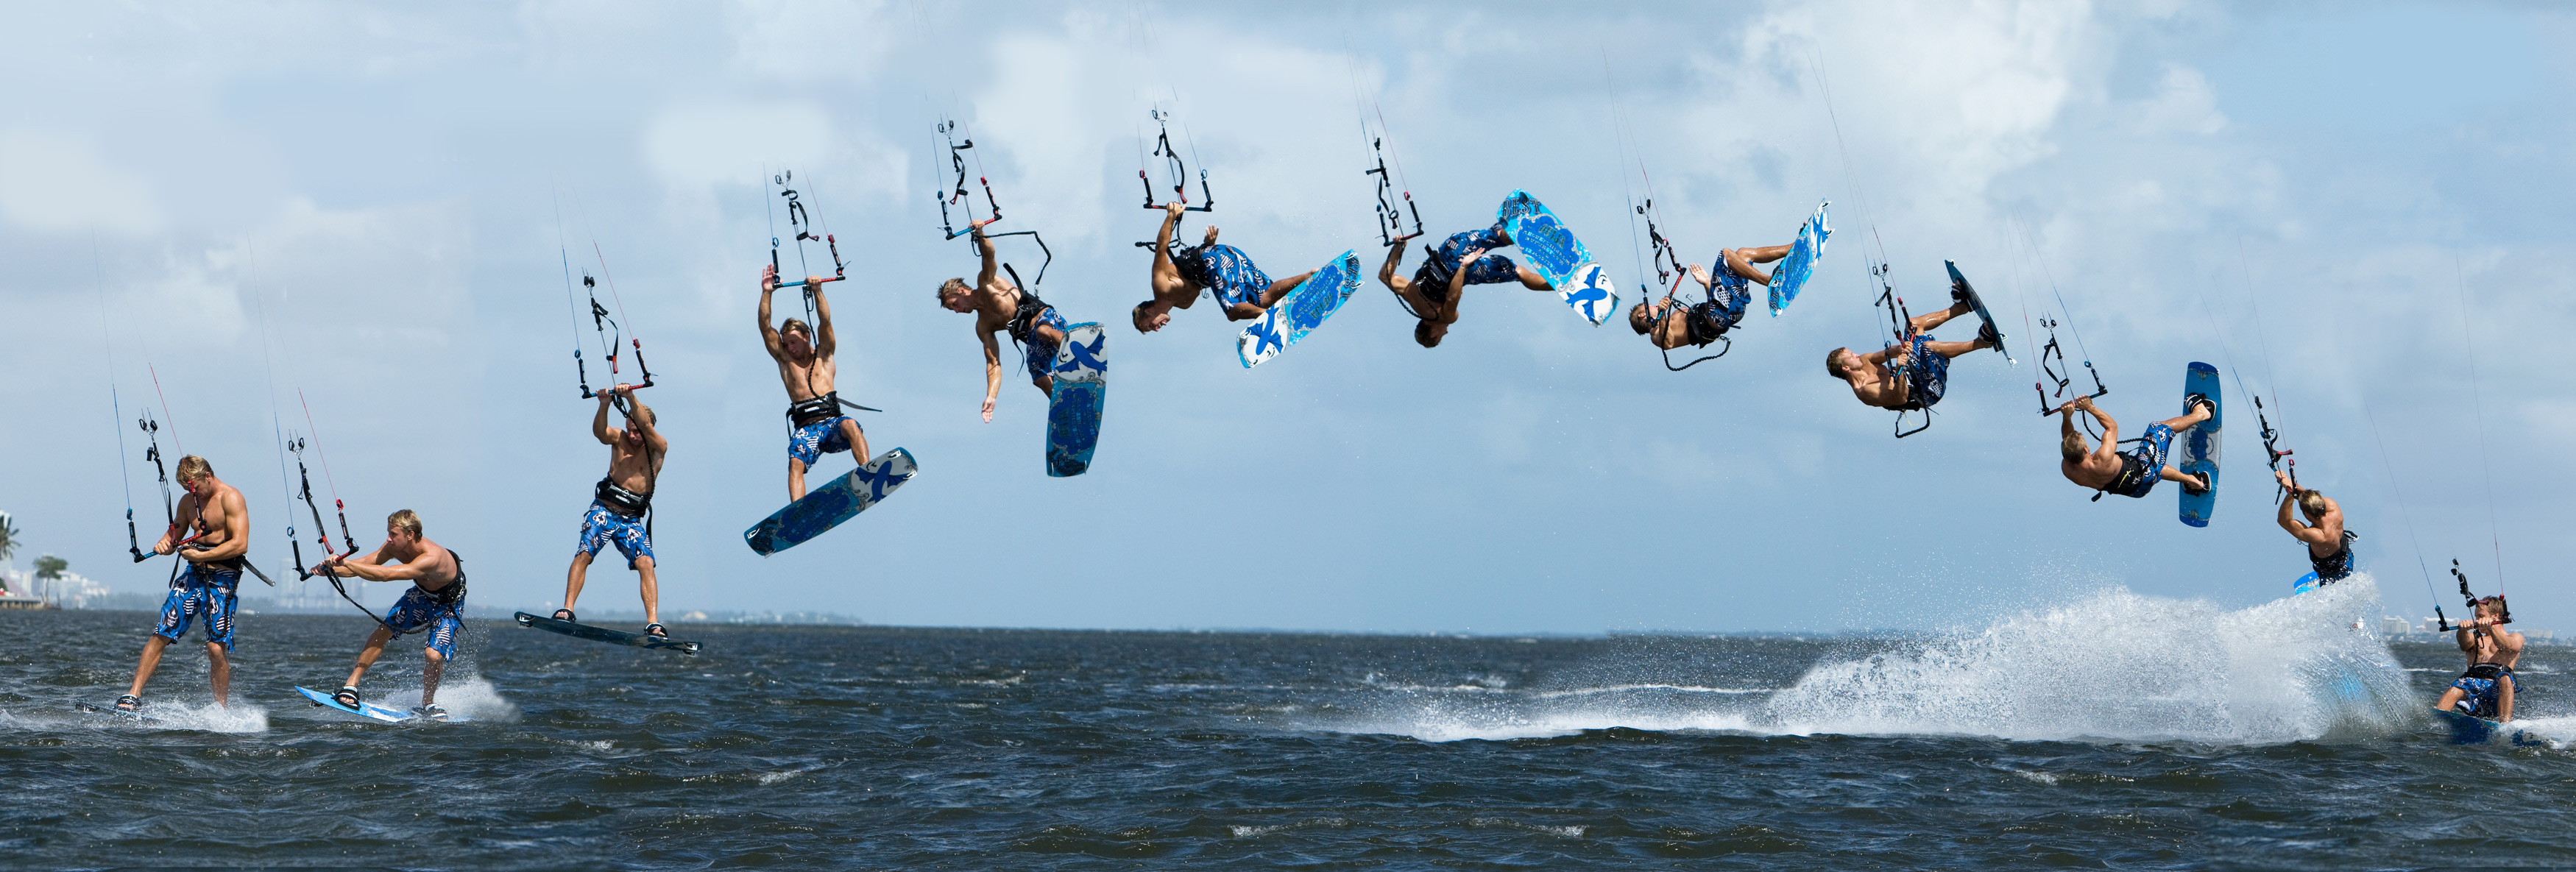 Kite Surfing Trick A Resource For Tricks And Tips Diagrams Youtube Click To View Full Image Of The Kgb